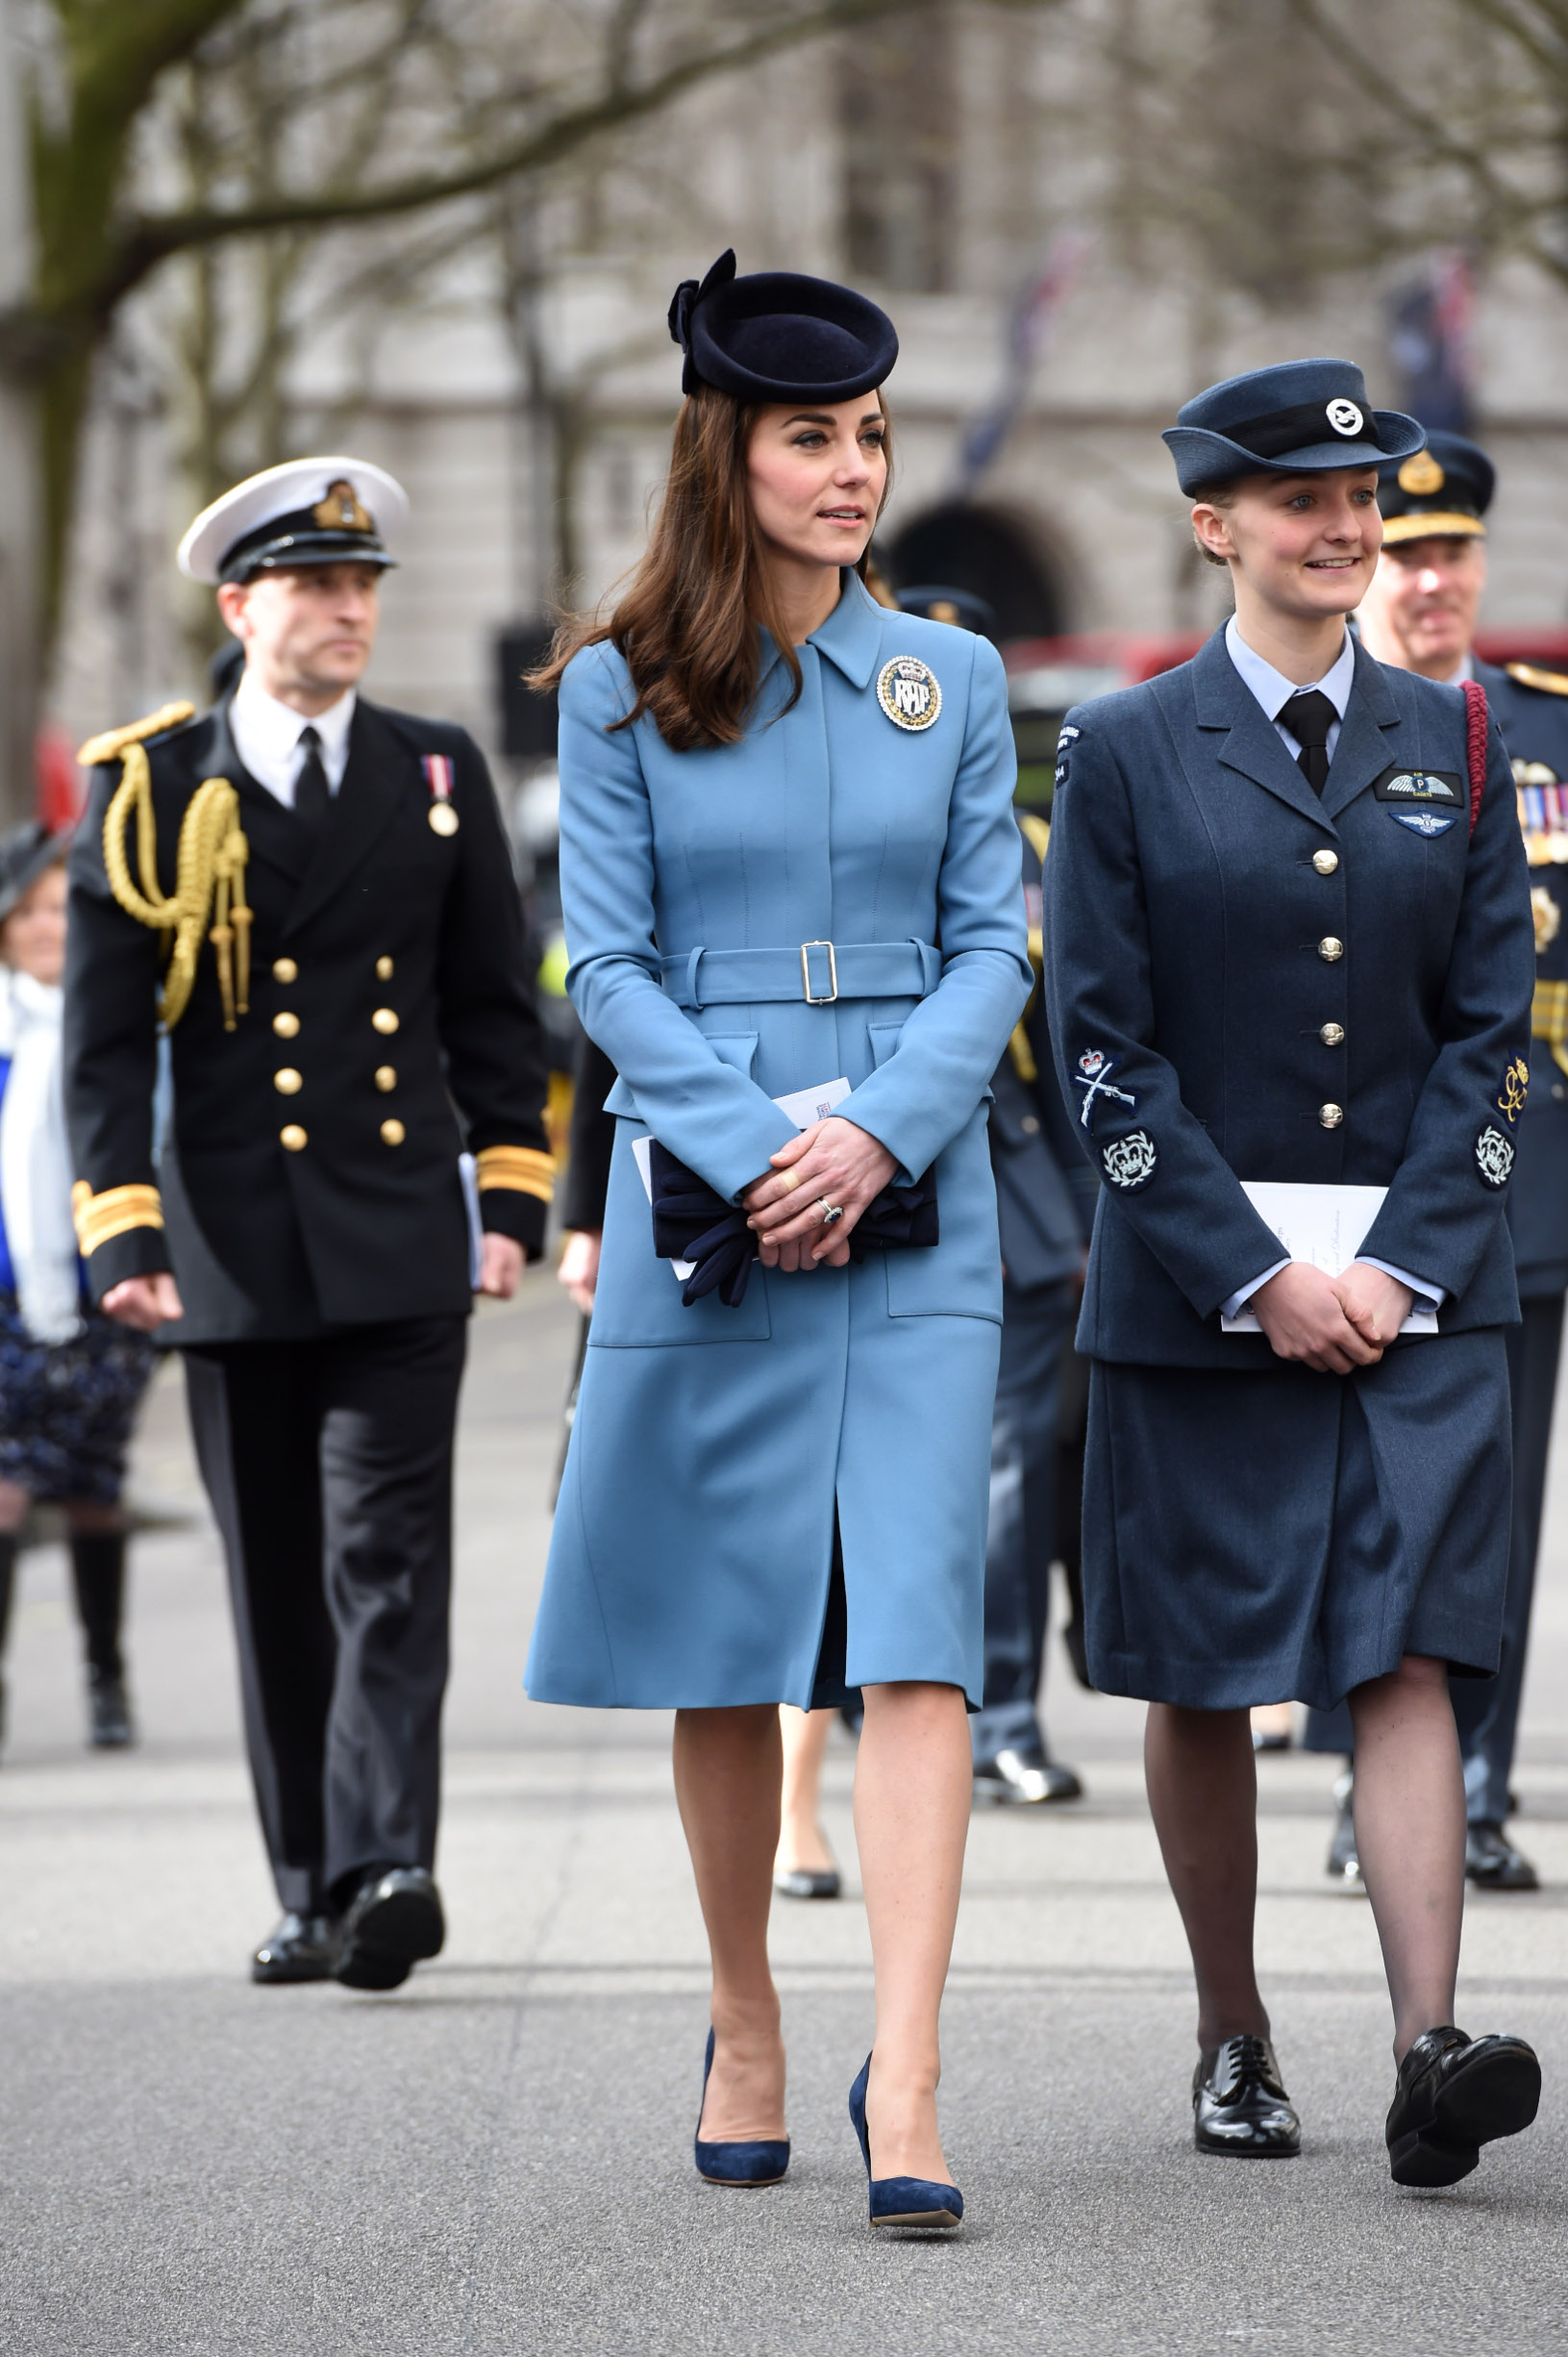 LONDON, ENGLAND - FEBRUARY 07:  Catherine, Duchess of Cambridge arrives to the 75th Anniversary of the RAF Air Cadets at St Clement Danes Church on February 7, 2016 in London, England.  (Photo by Eddie Mulholland - WPA Pool/Getty Images)